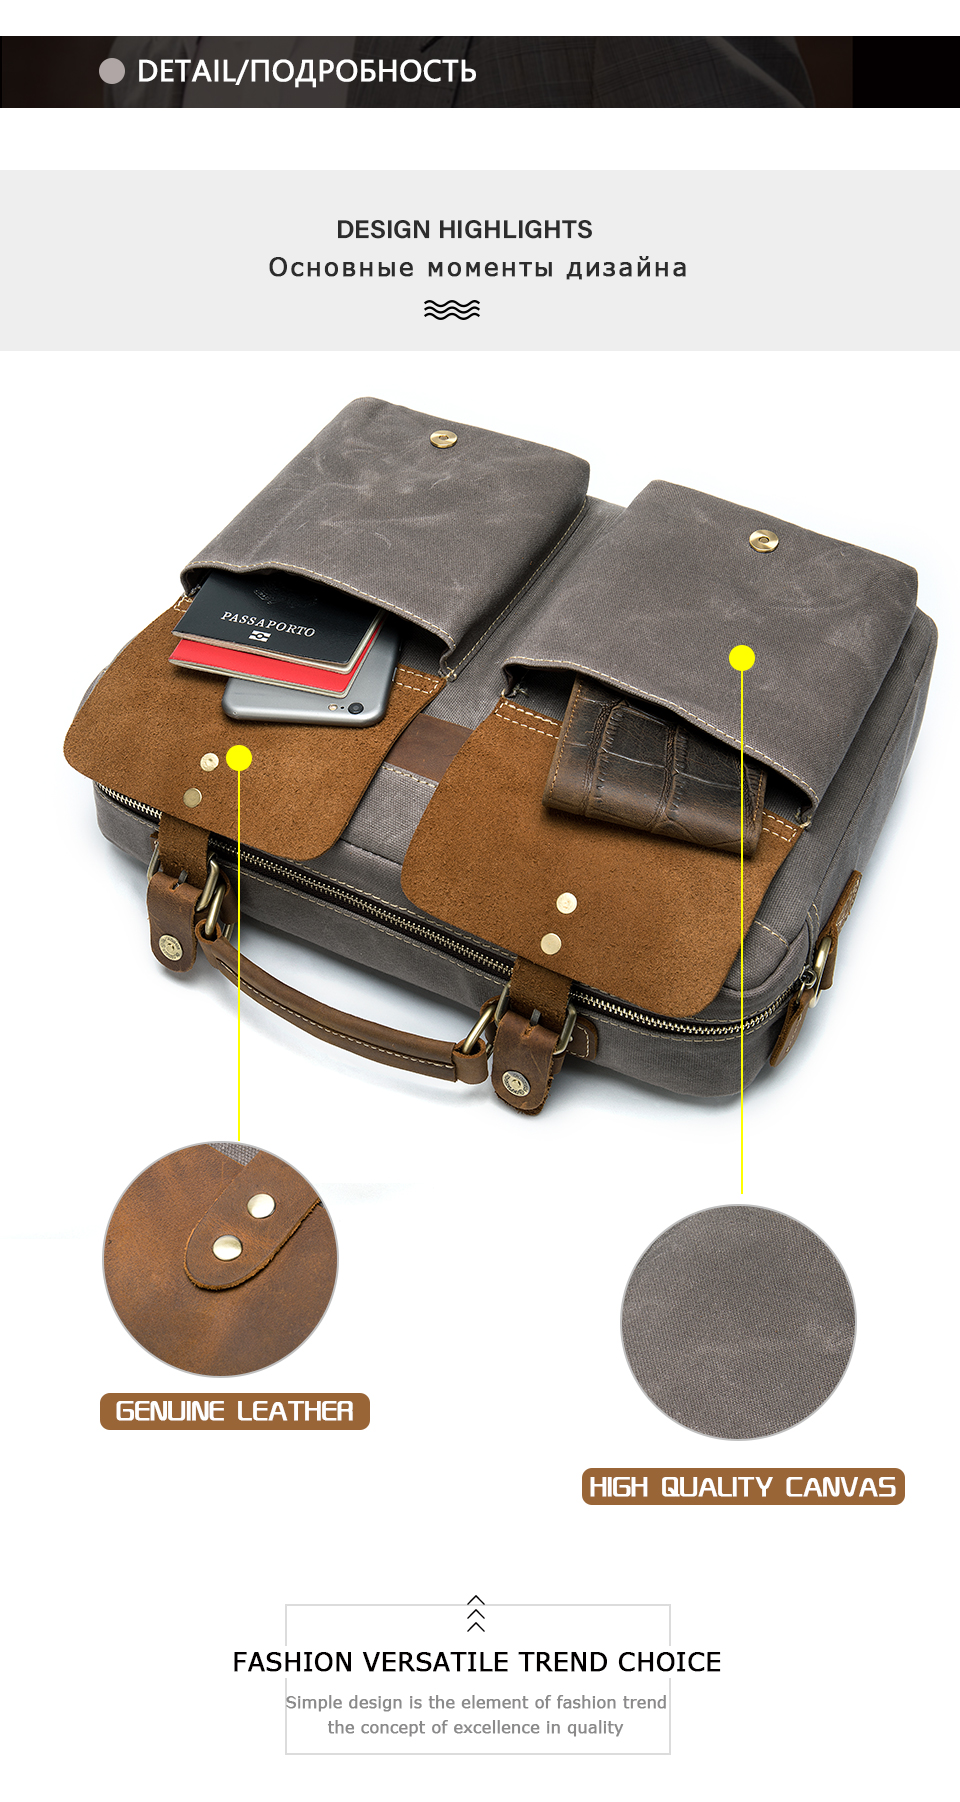 H61a358ee5d574961aa04dc16f390c545s WESTAL Men Briefcases Men's Bag Genuine Leather Business Office Bags for Men Laptop Bag Leather Briefcases Male Lawyer Bags